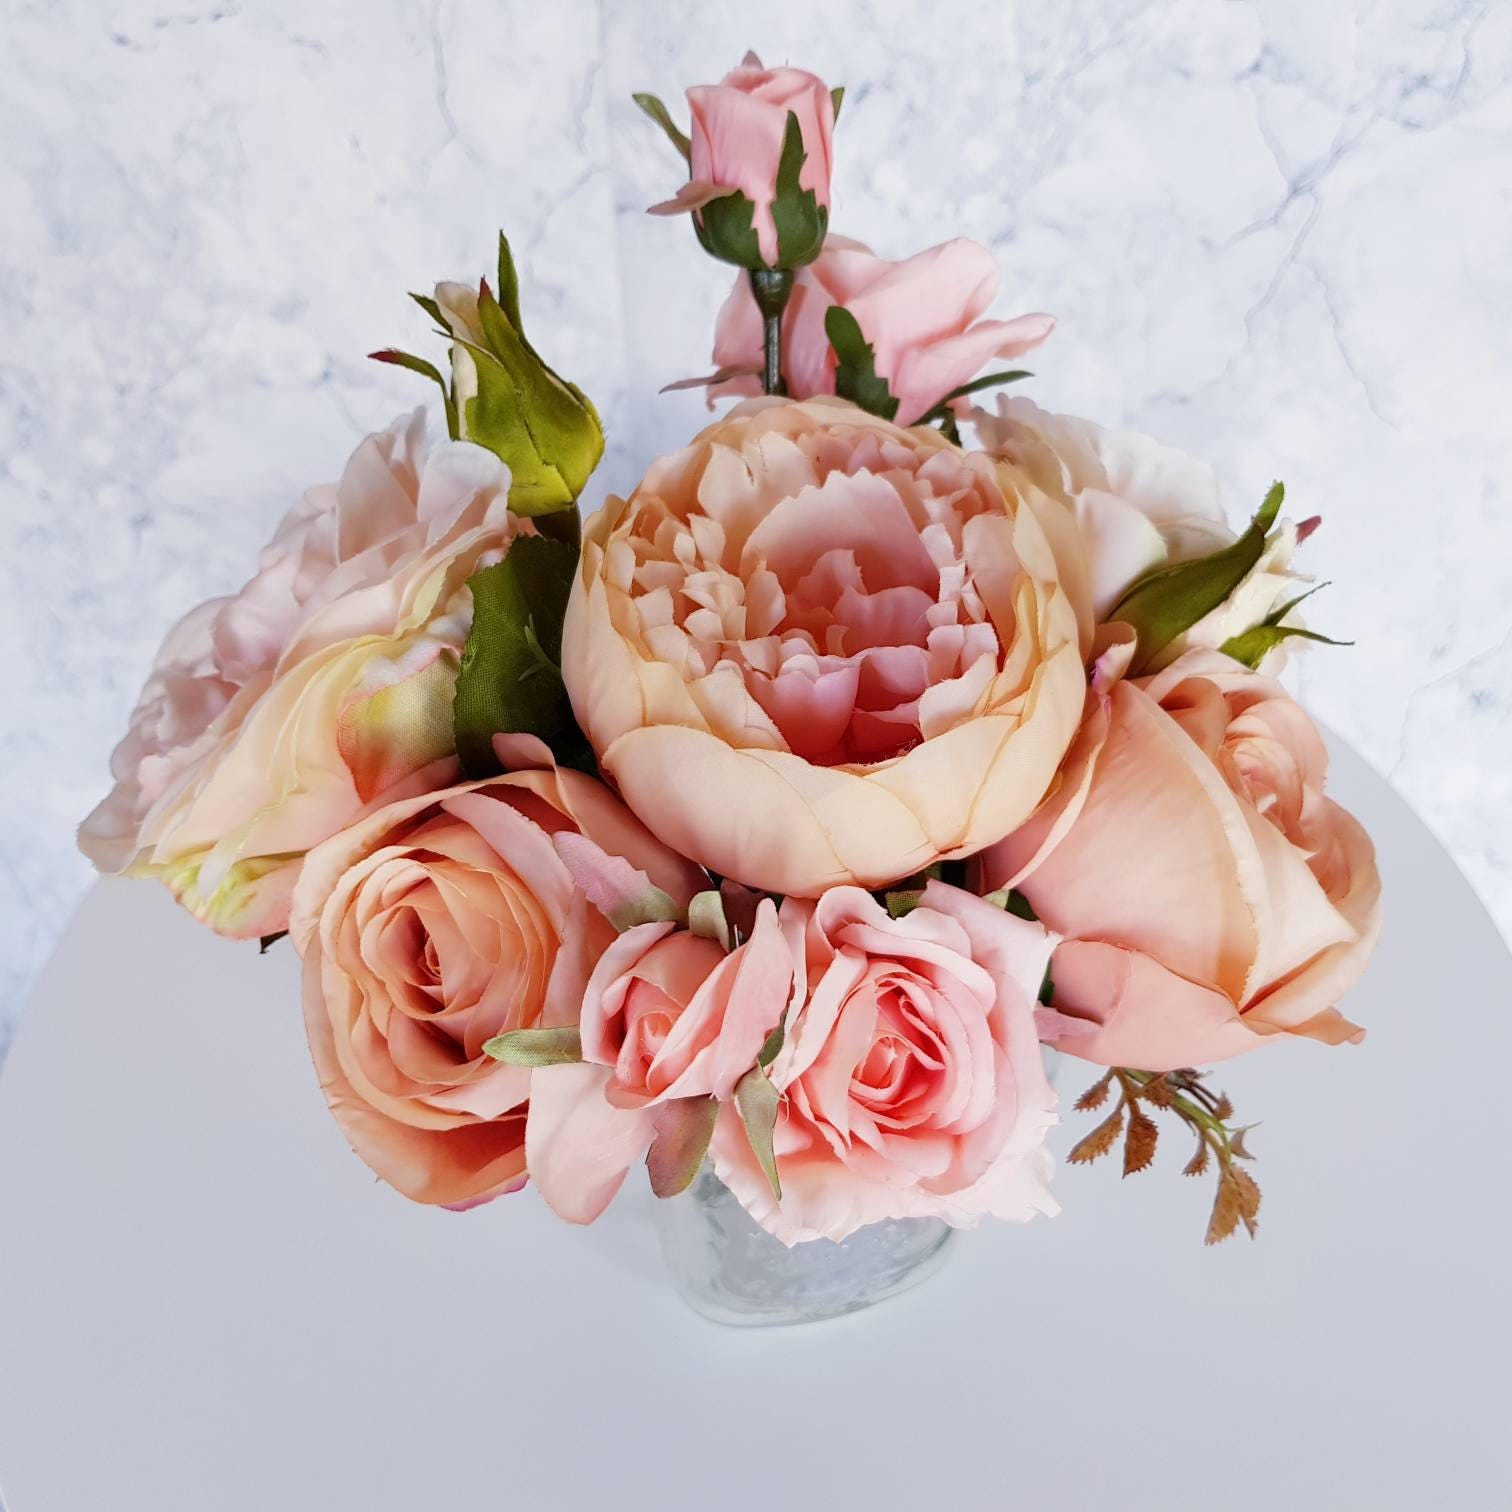 Peach Pink Bouquet Mixed Flowers Nostalgic Home Decor Wedding Event  Occasion Gift Present Artificial Silk Loose